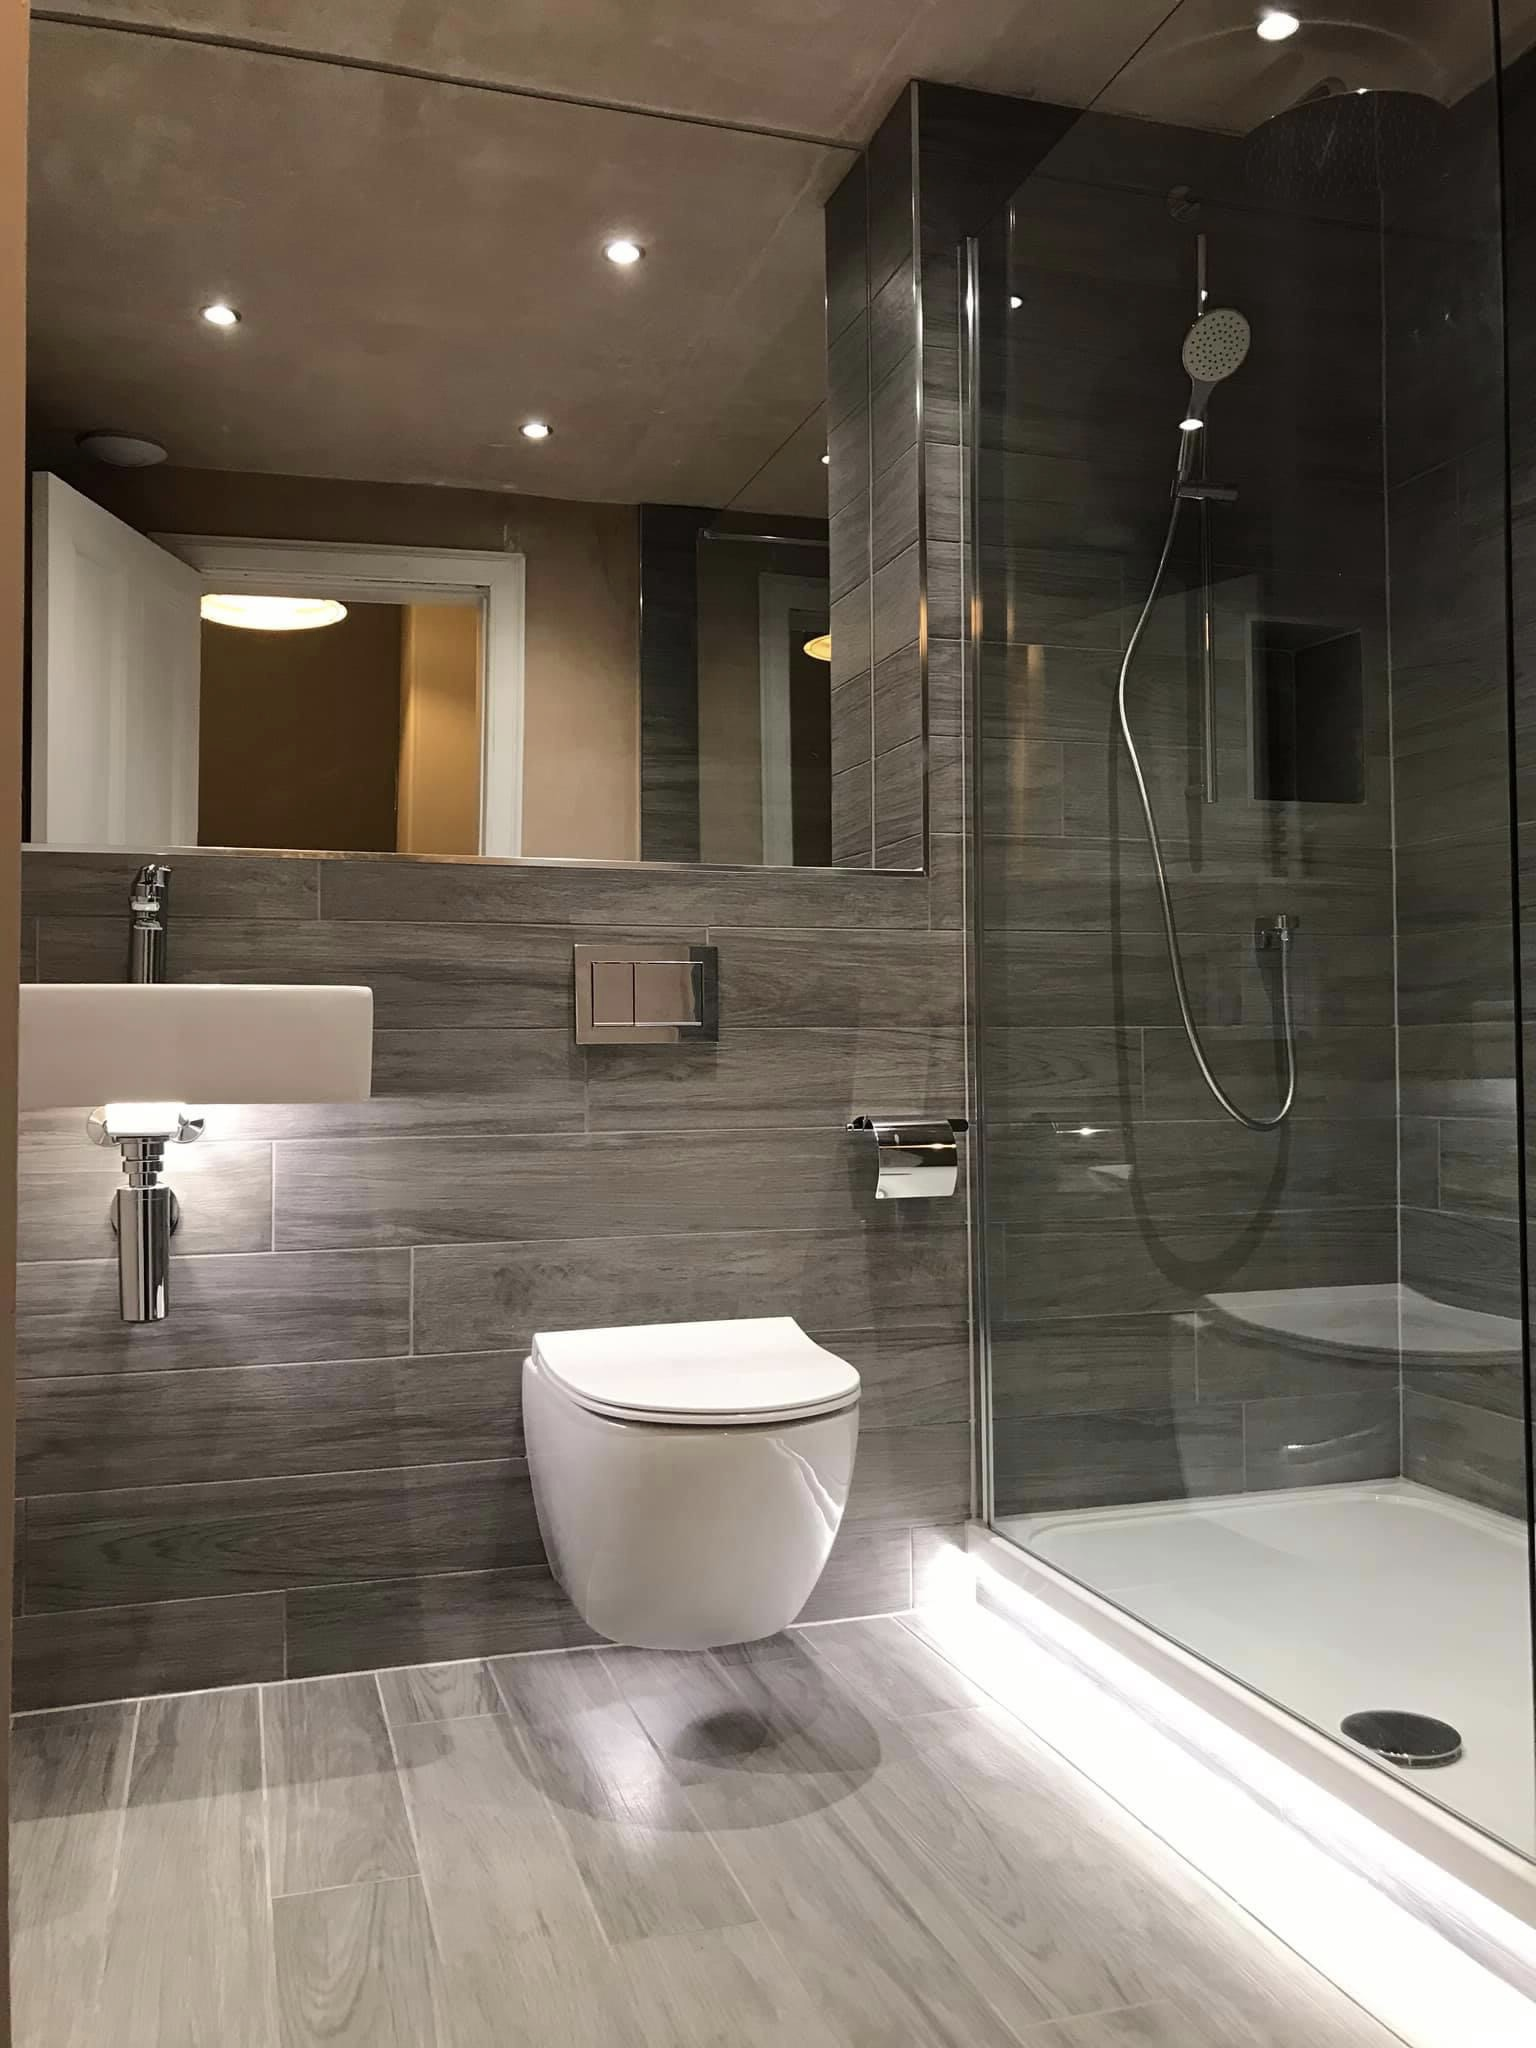 Sunny Coast bathroom renovation